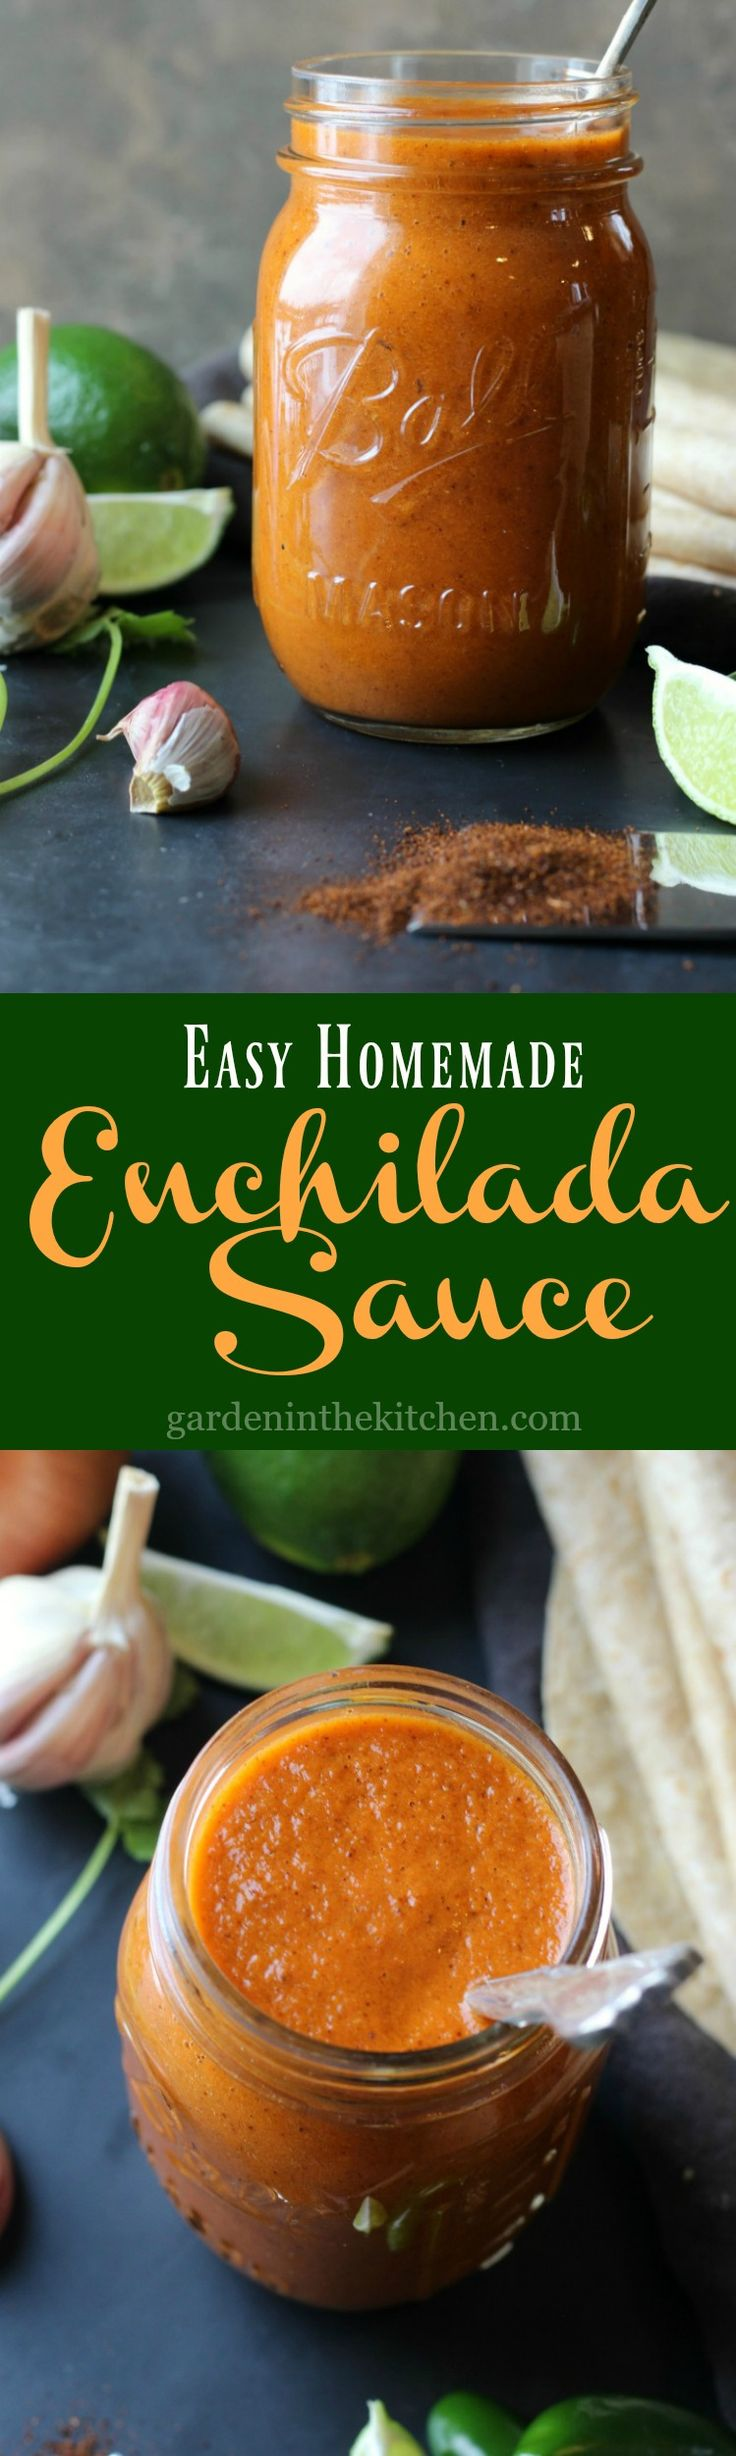 Easy Homemade Enchilada Sauce | gardeninthekitchen.com